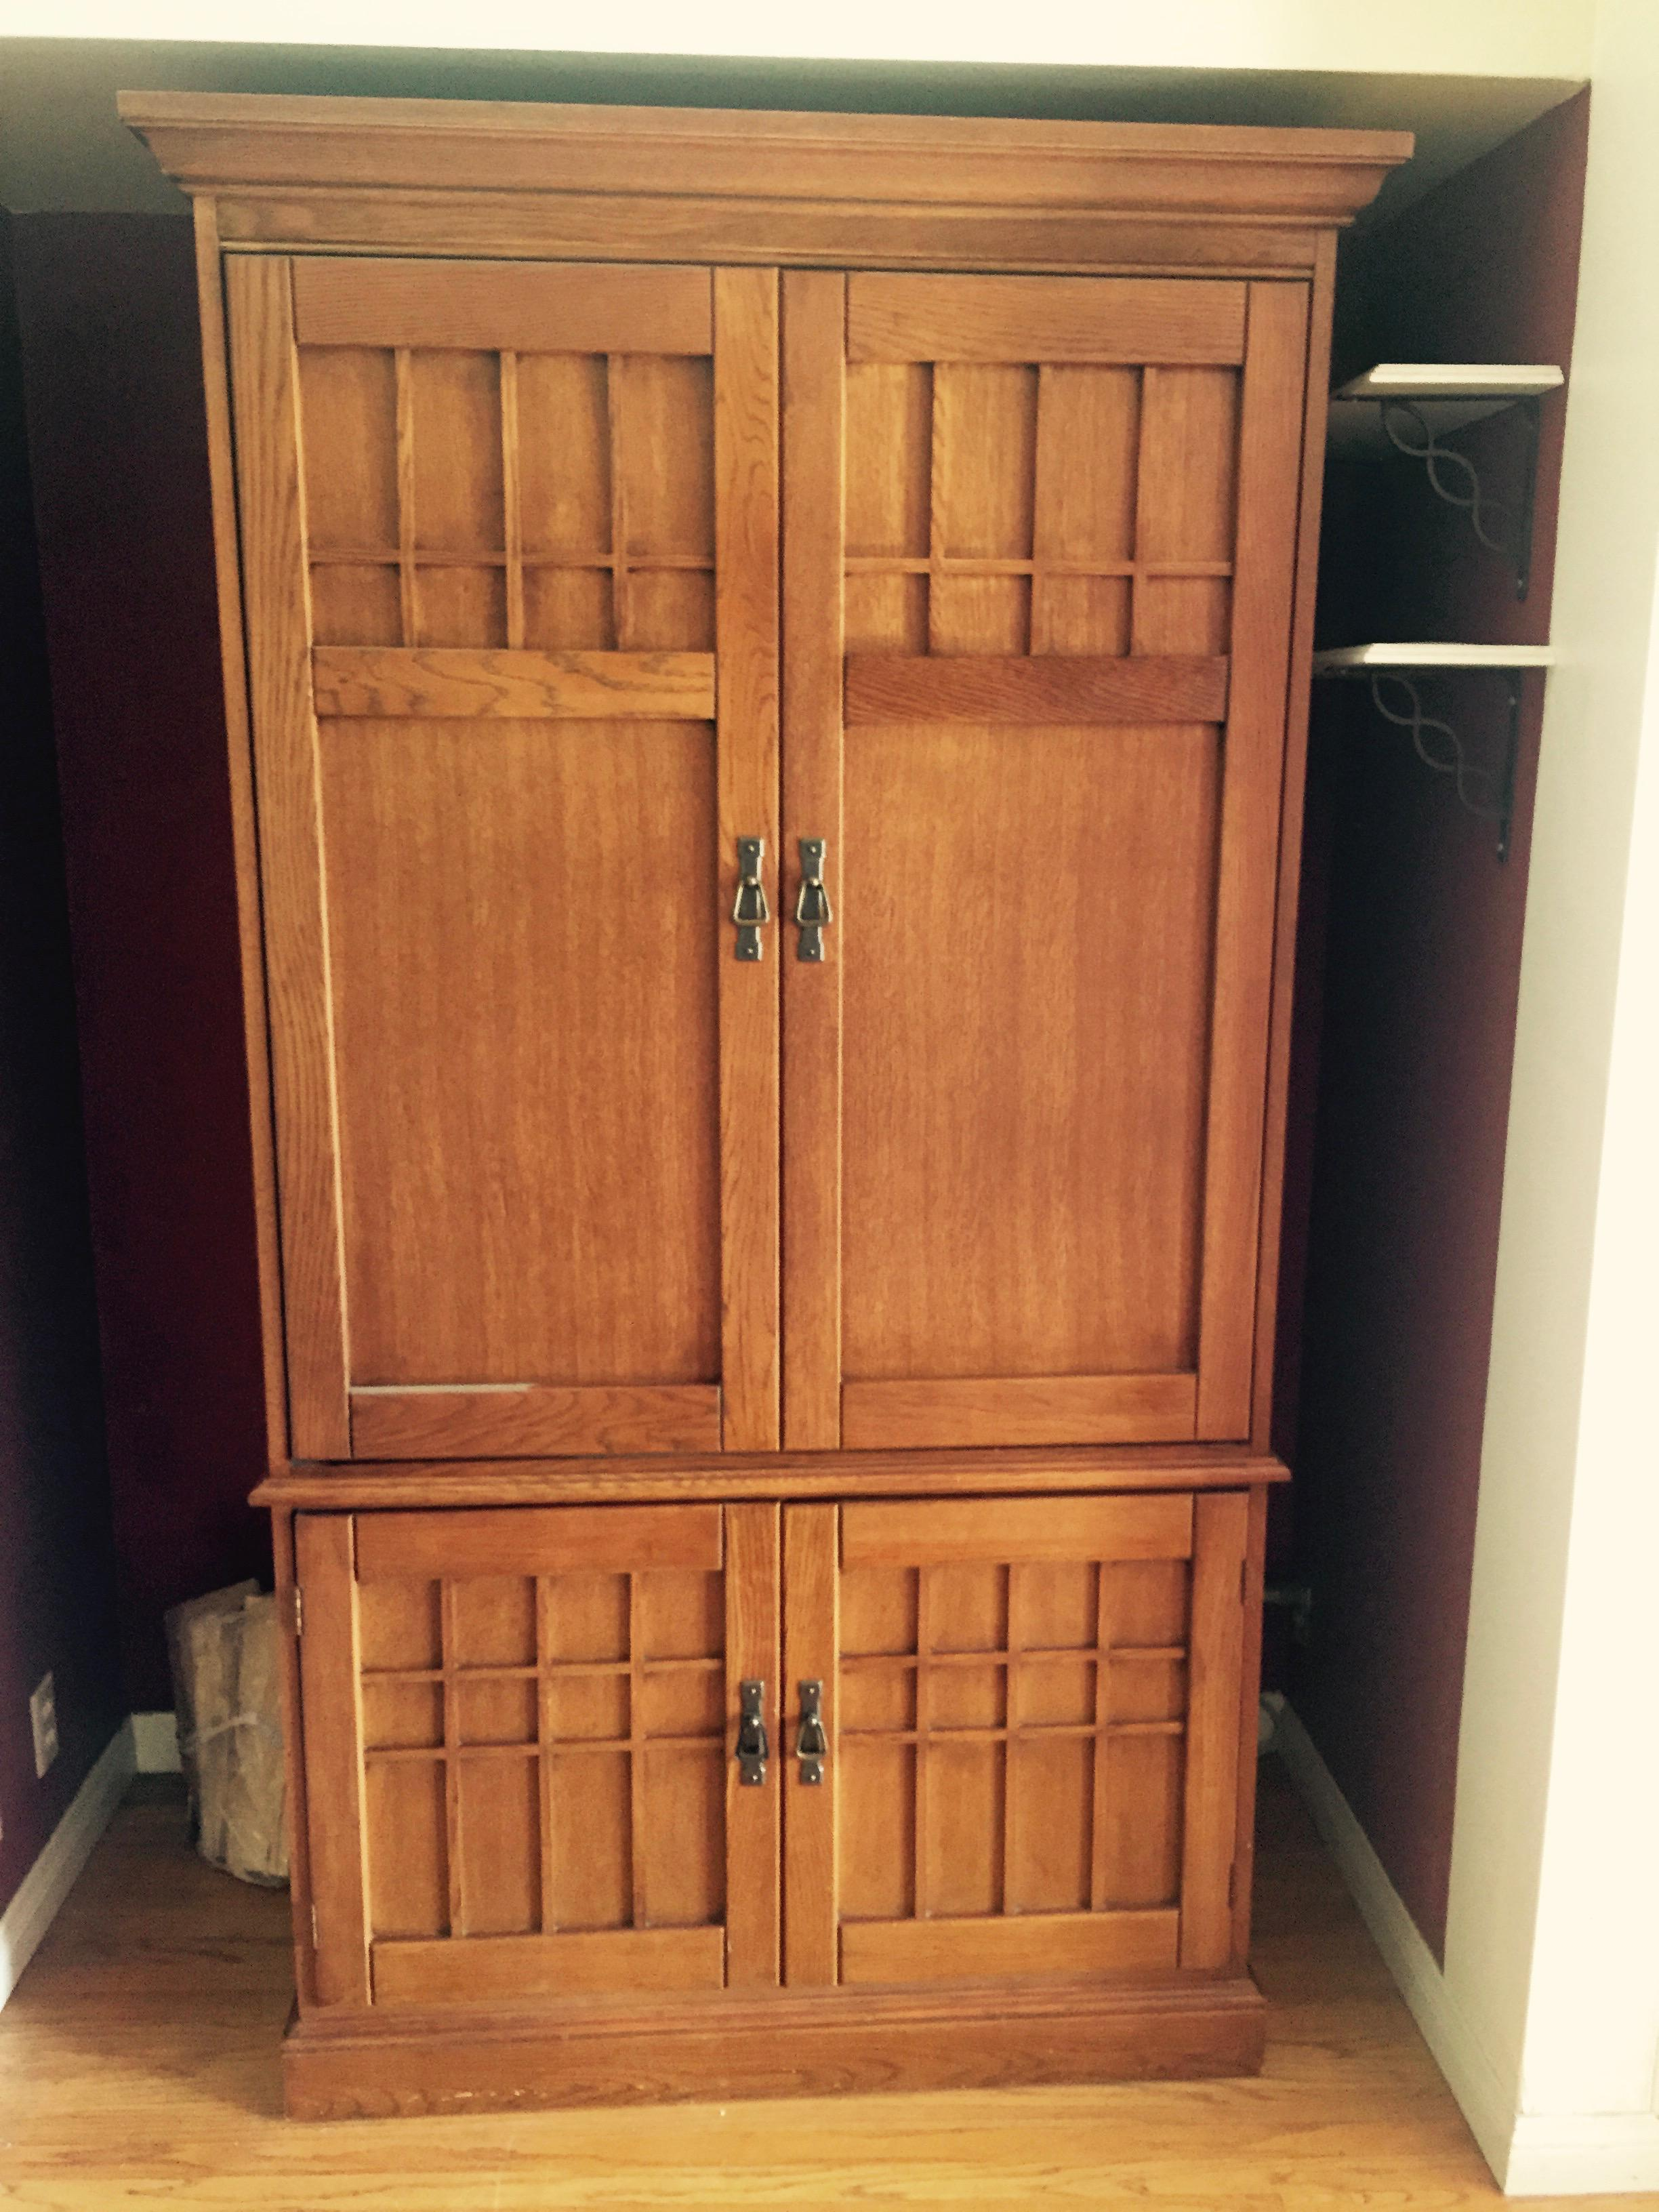 Mission Style Wardrobe/Entertainment Cabinet By Hooker Furniture   Image 2  Of 6